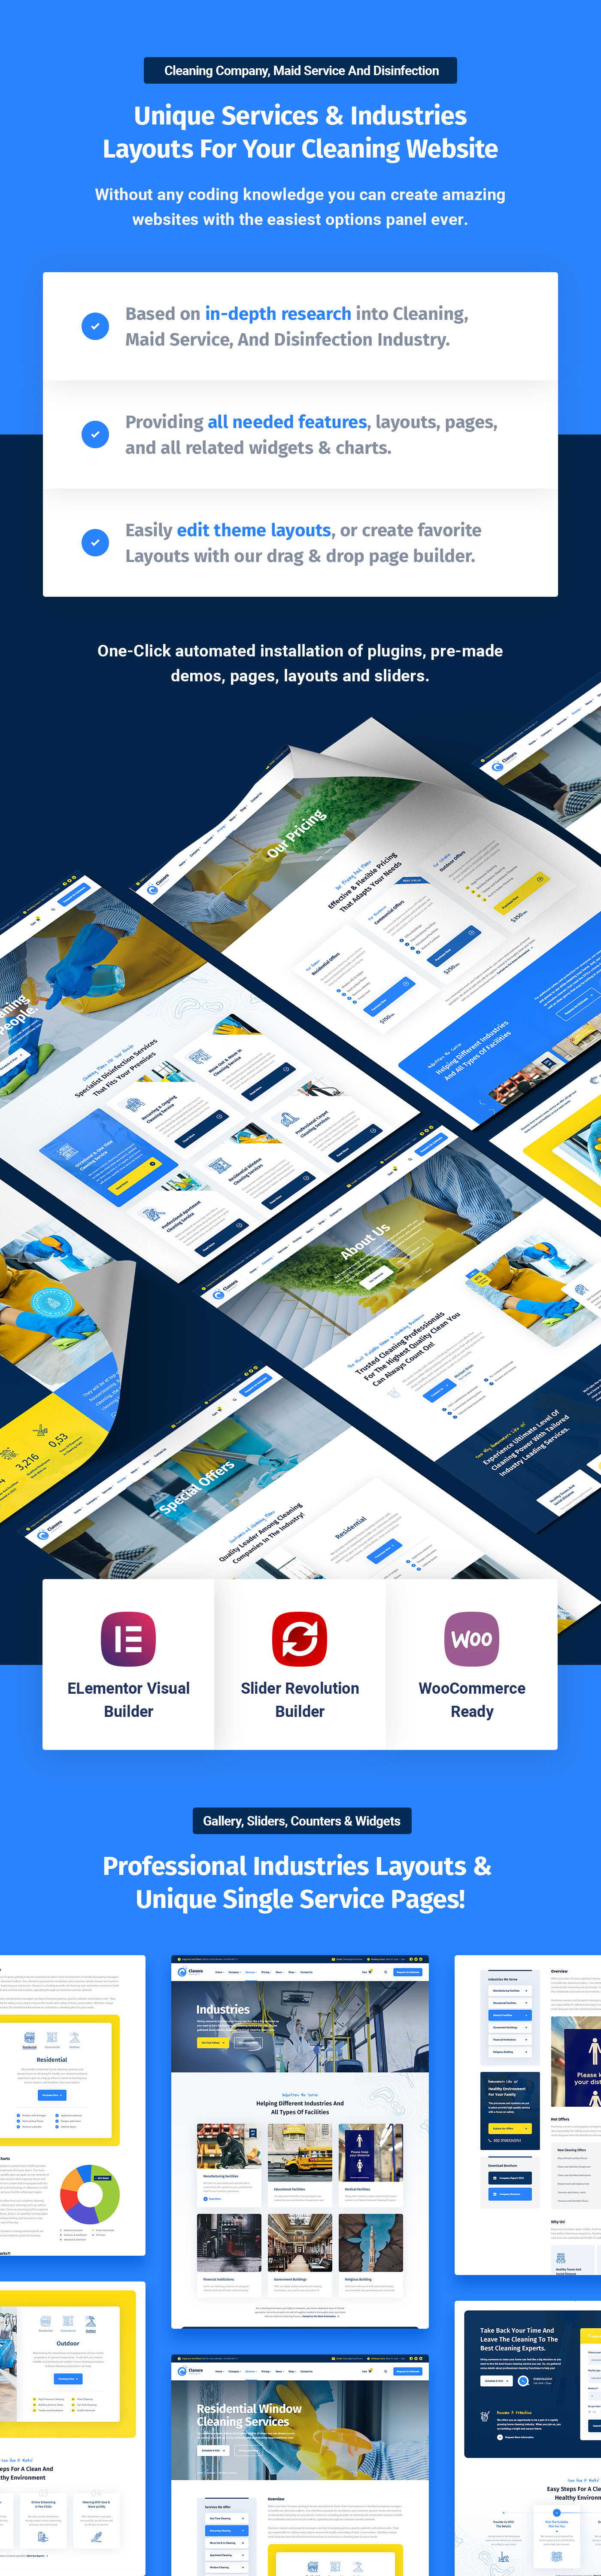 Clanora - Cleaning Services WordPress Theme - 6